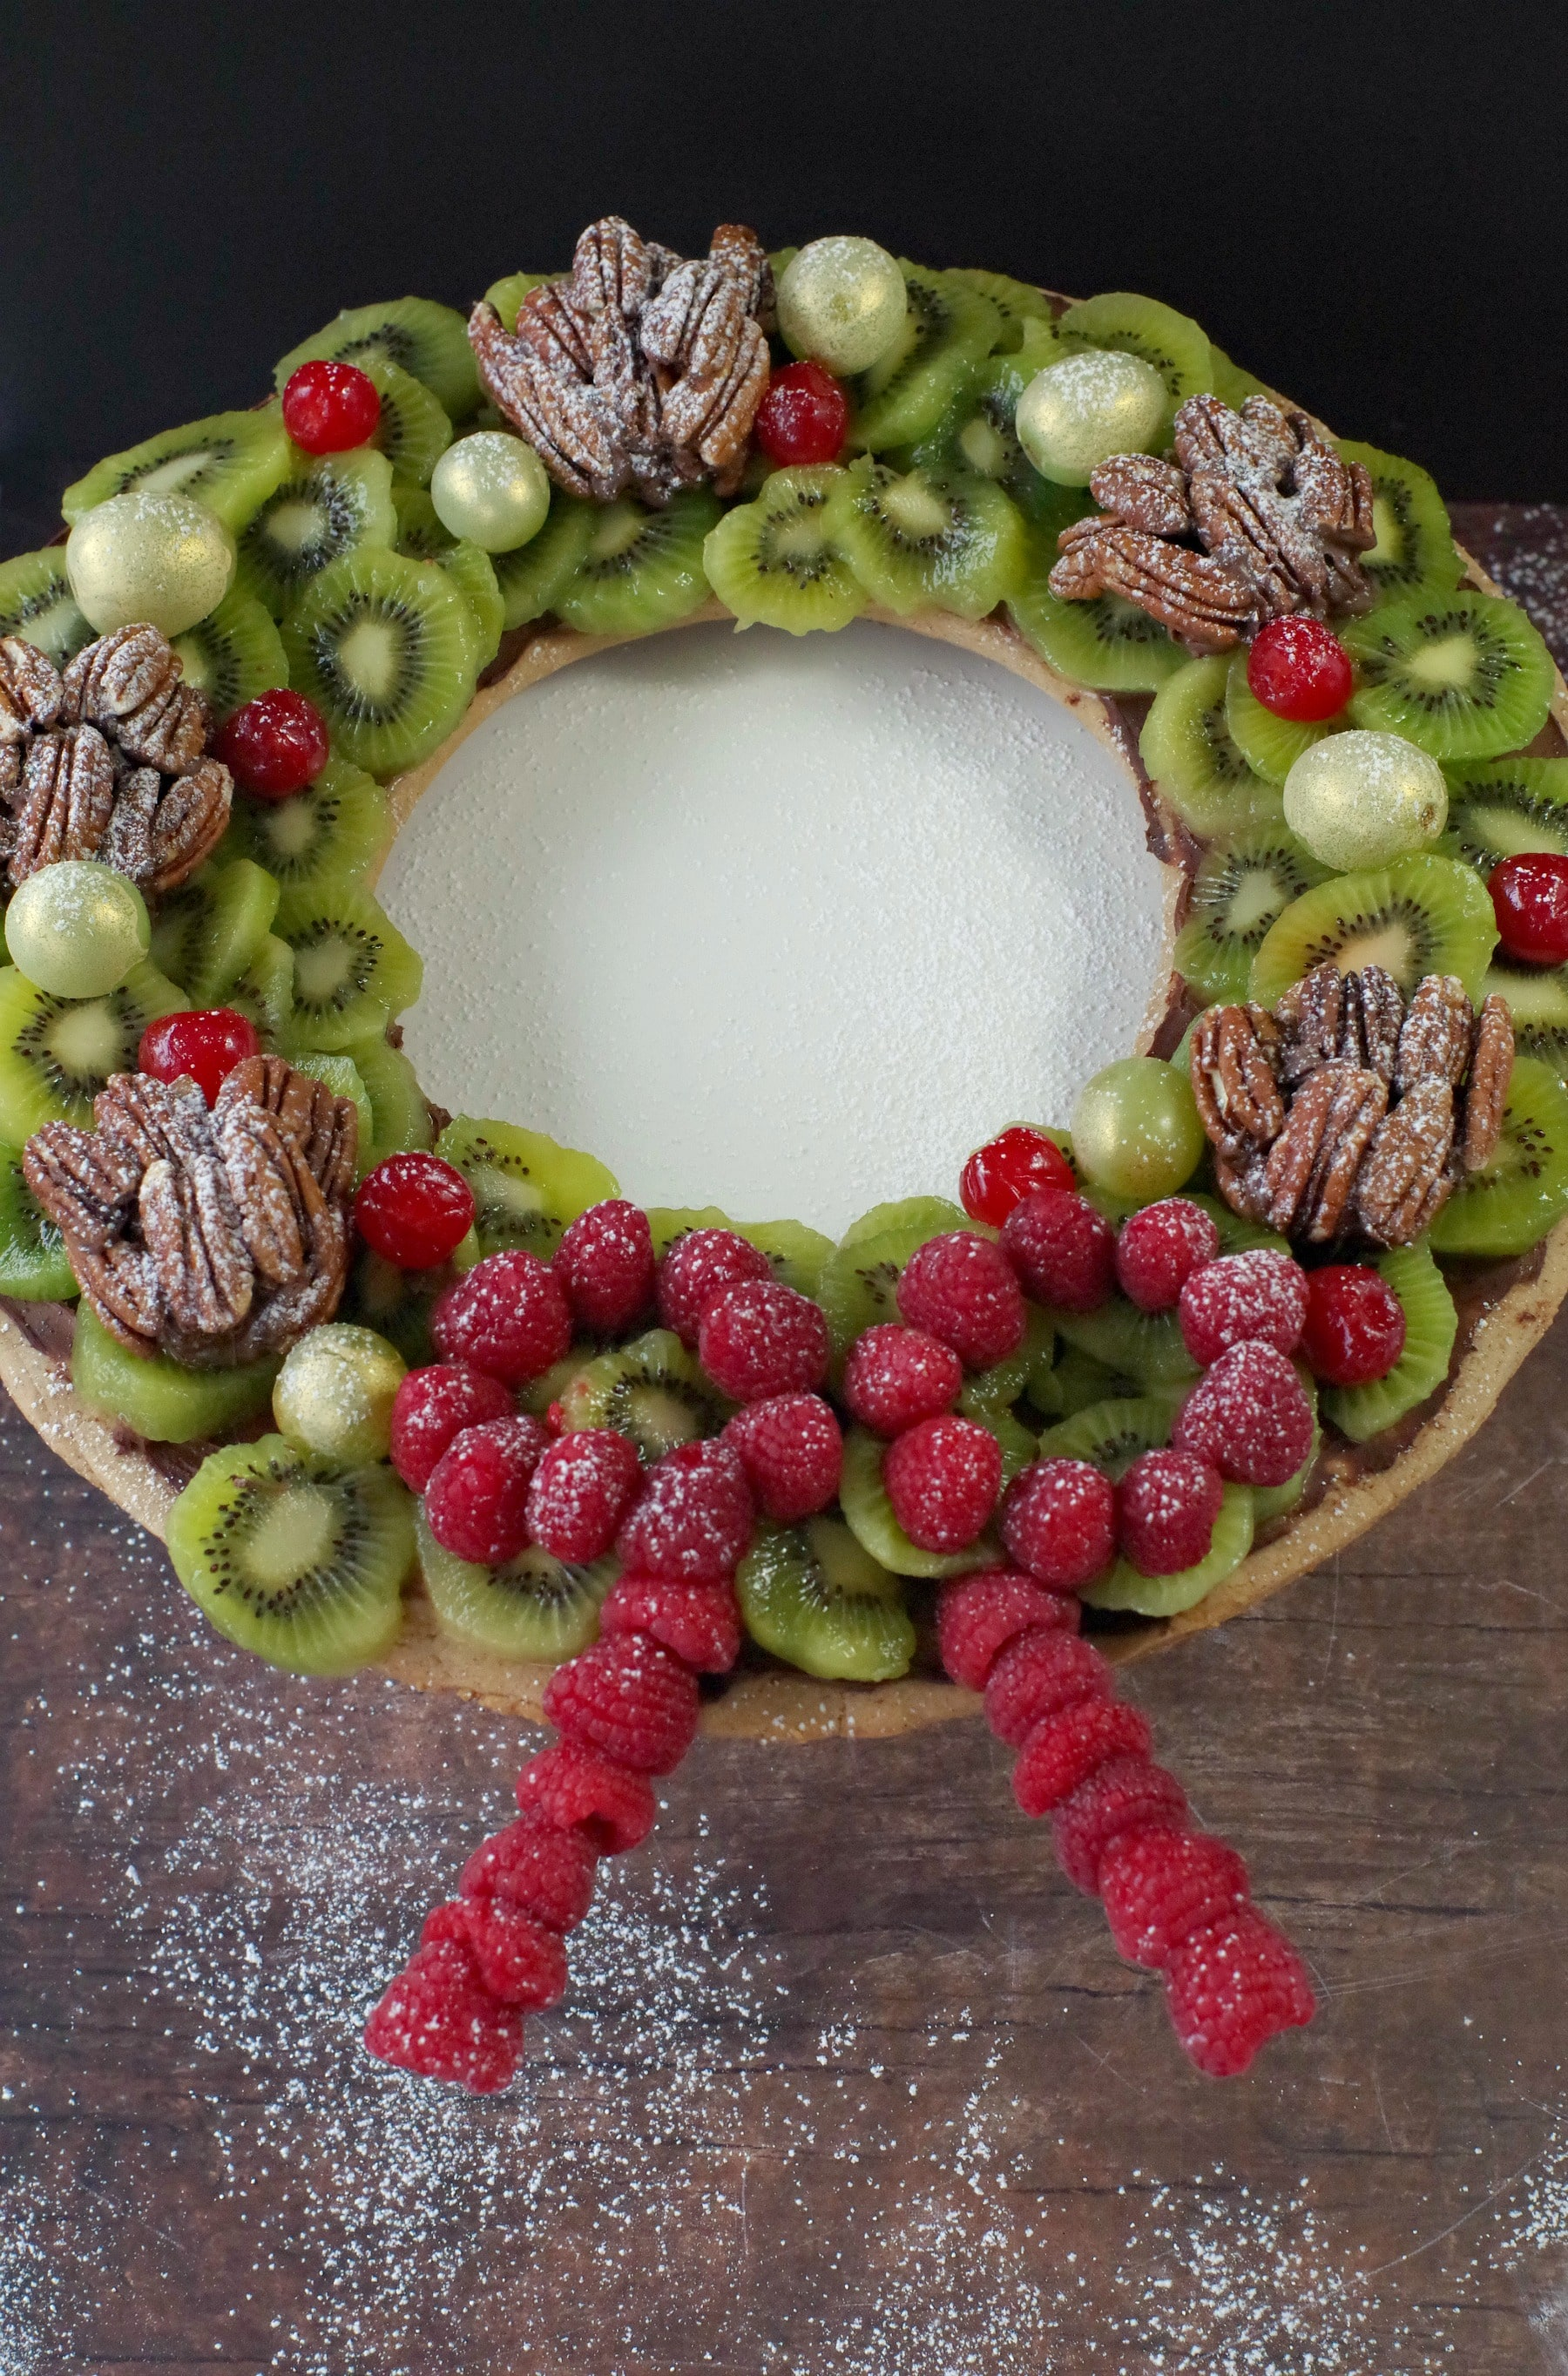 Gingerbread Edible Christmas Wreath with fruit and nuts, on brown wooden surface with powdered sugar sprinkles